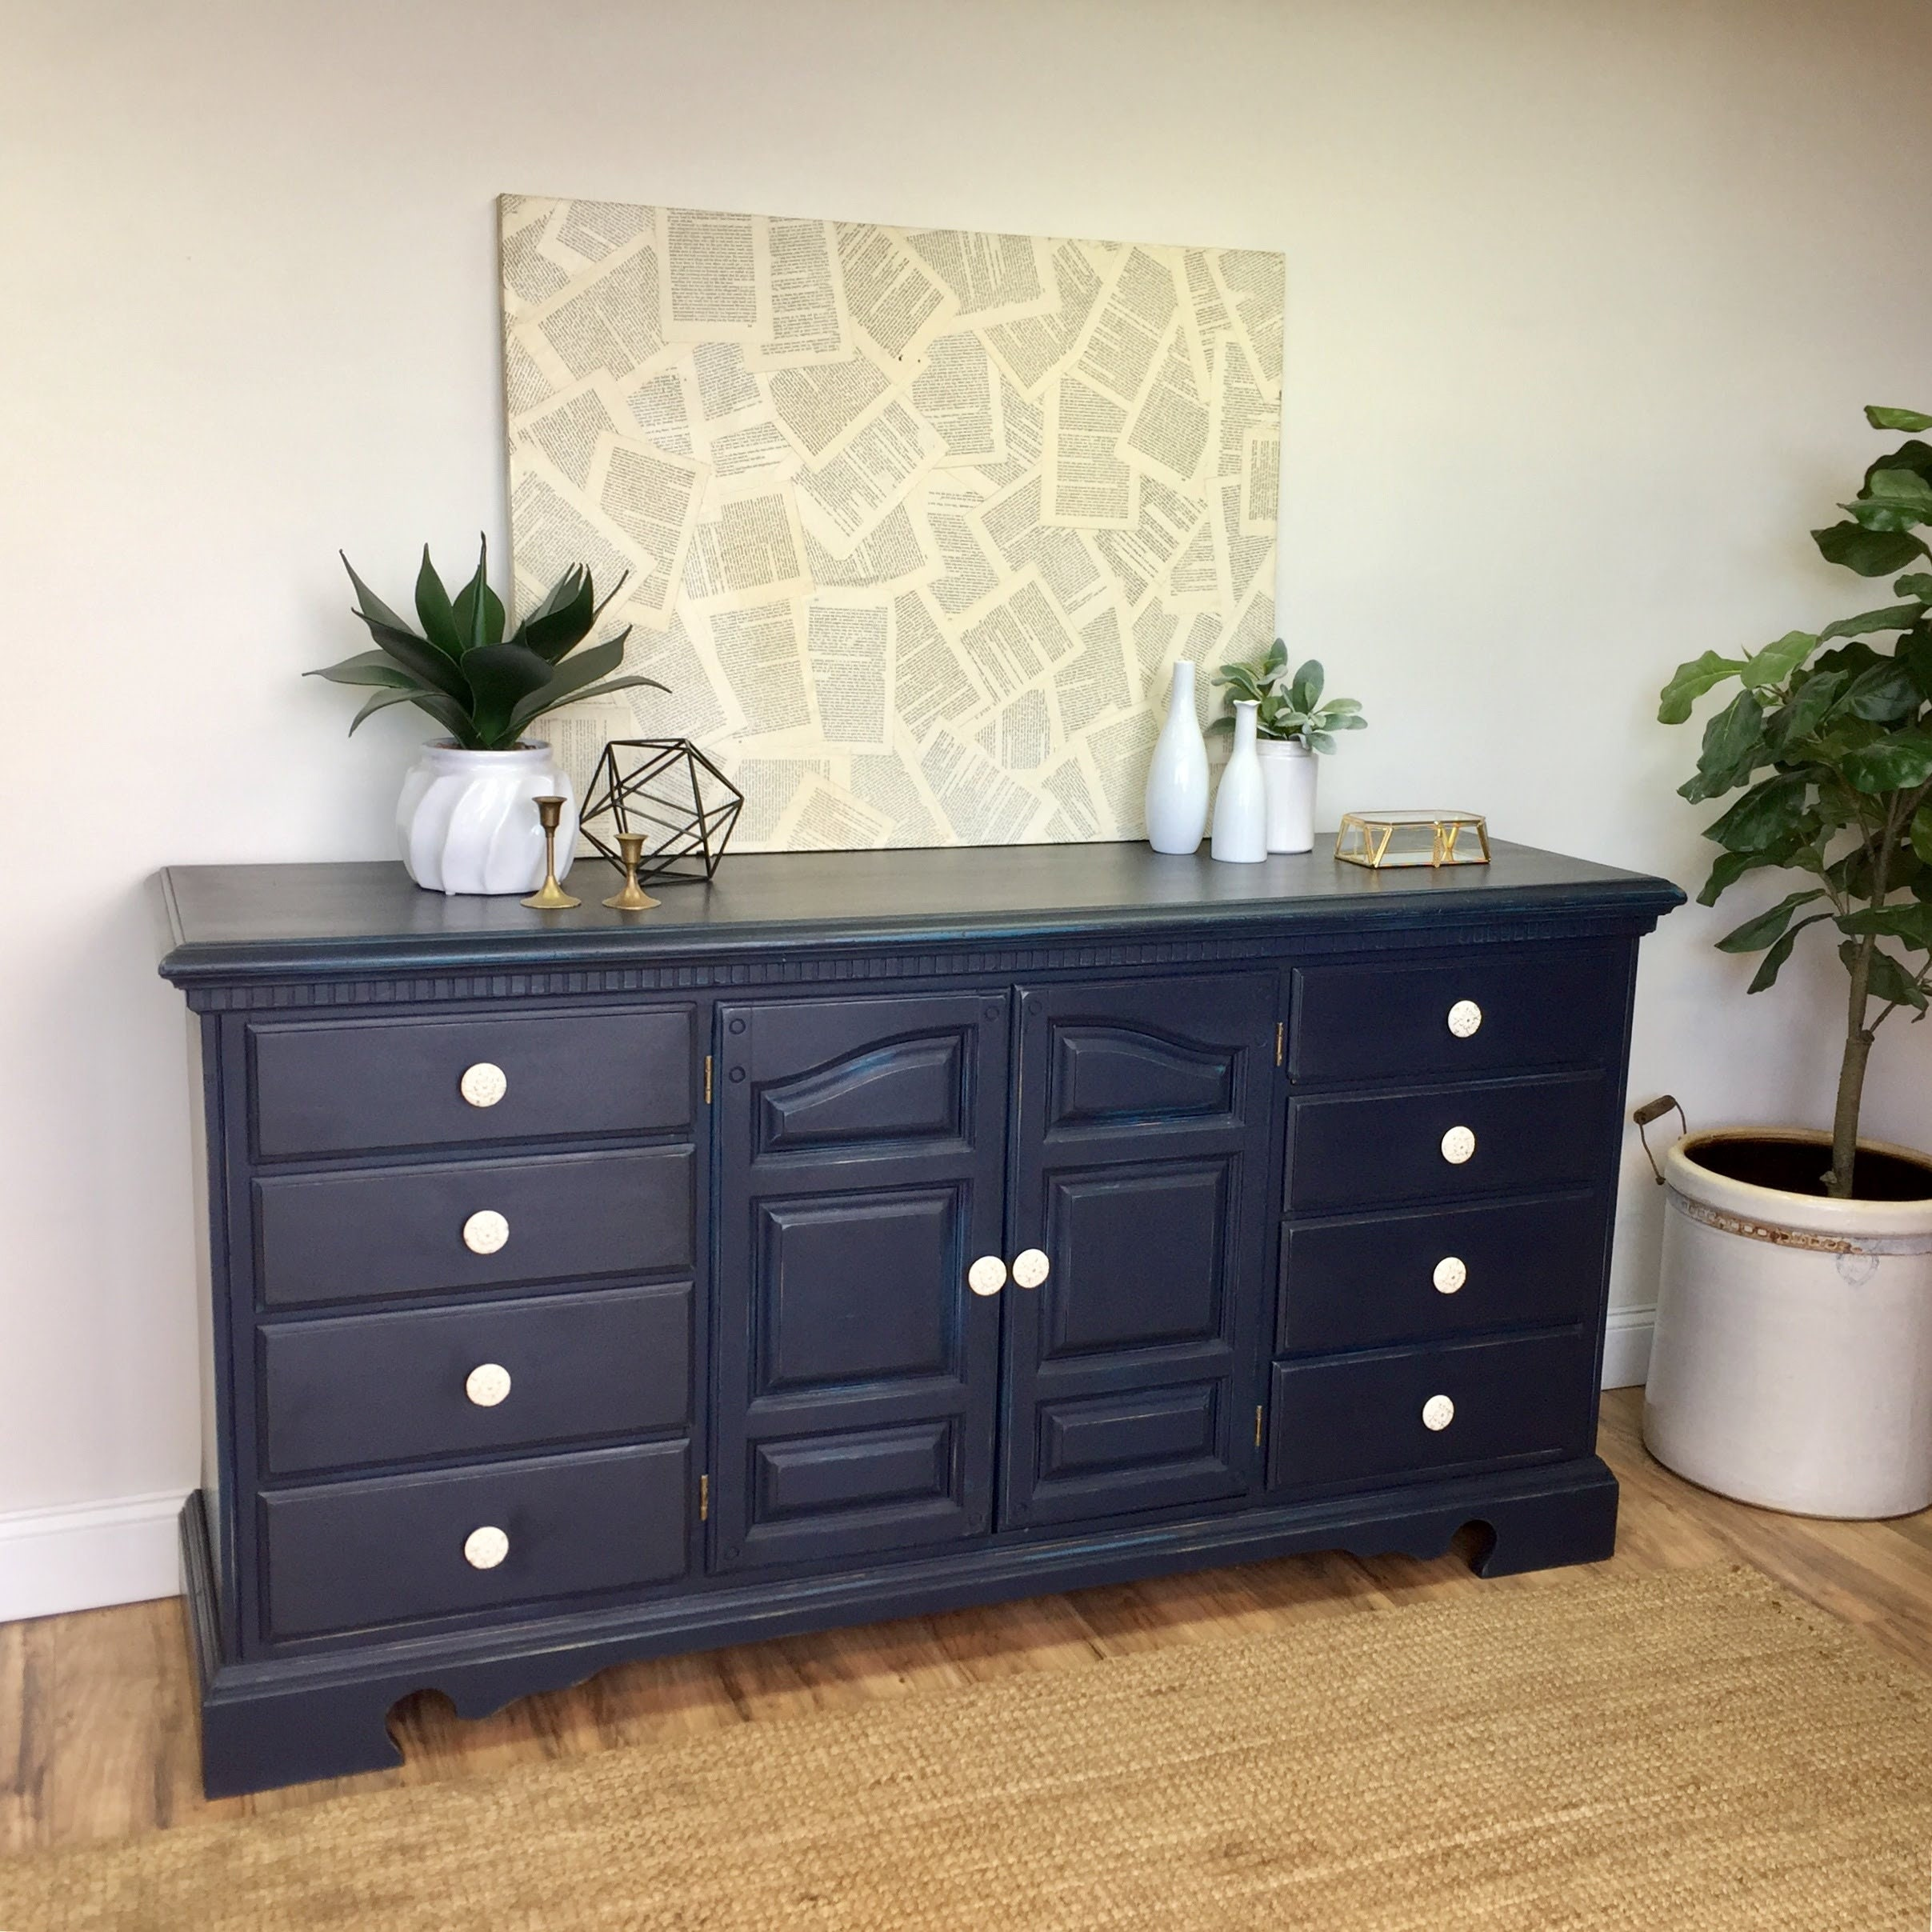 Navy Blue Dresser   Vintage Furniture   Chest Of Drawers   Distressed  Dresser   Coastal Furniture   Nursery Dresser   Painted Furniture